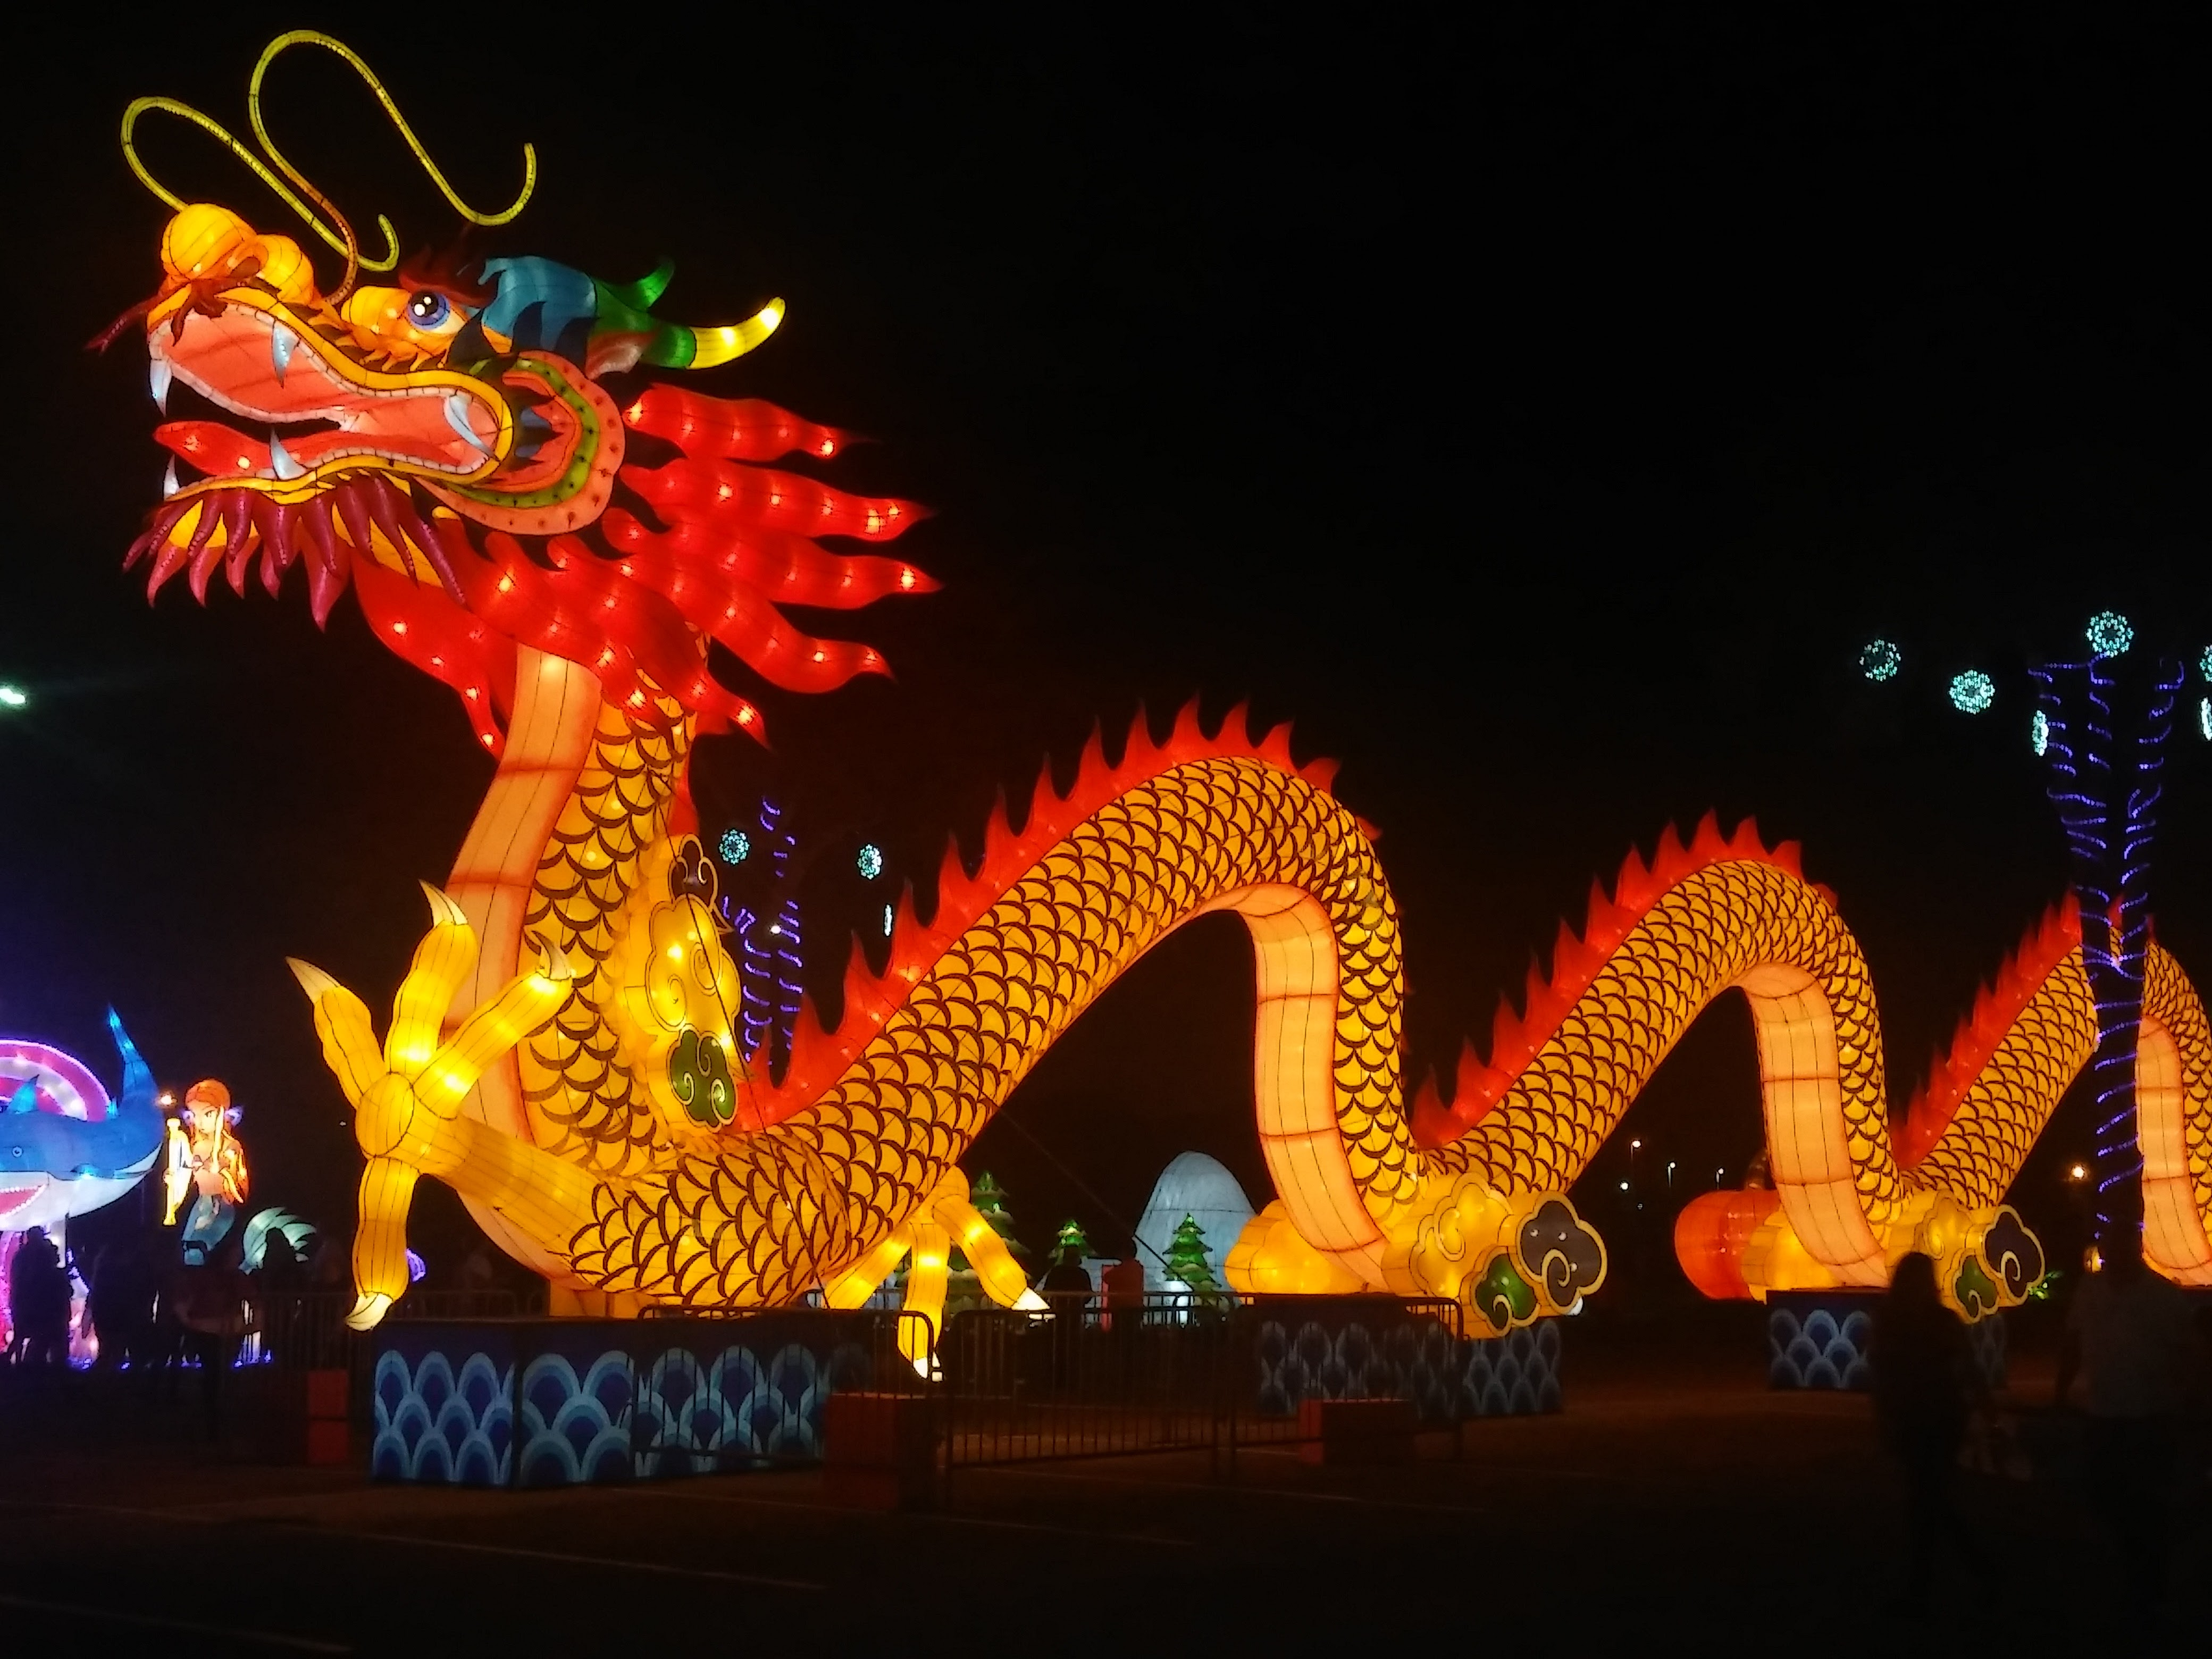 If You Love An Evening Full Of Festive Lights And Amazing Sights Bring Your Family To The Lantern Light Festival A Rare Opportunity Witness